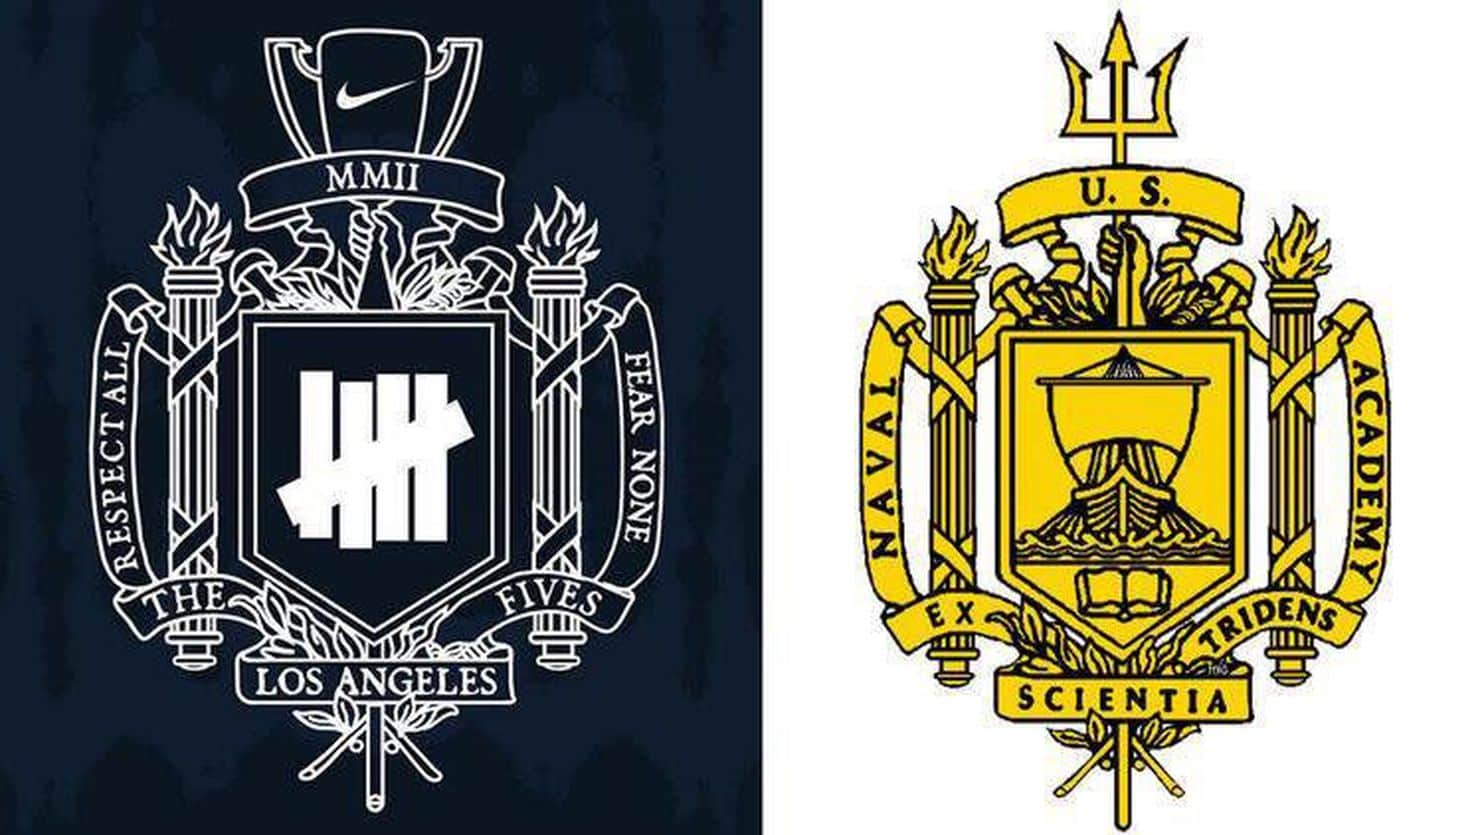 Undefeated Logo - U.S. Naval Academy demands Nike stop using Undefeated logo that ...